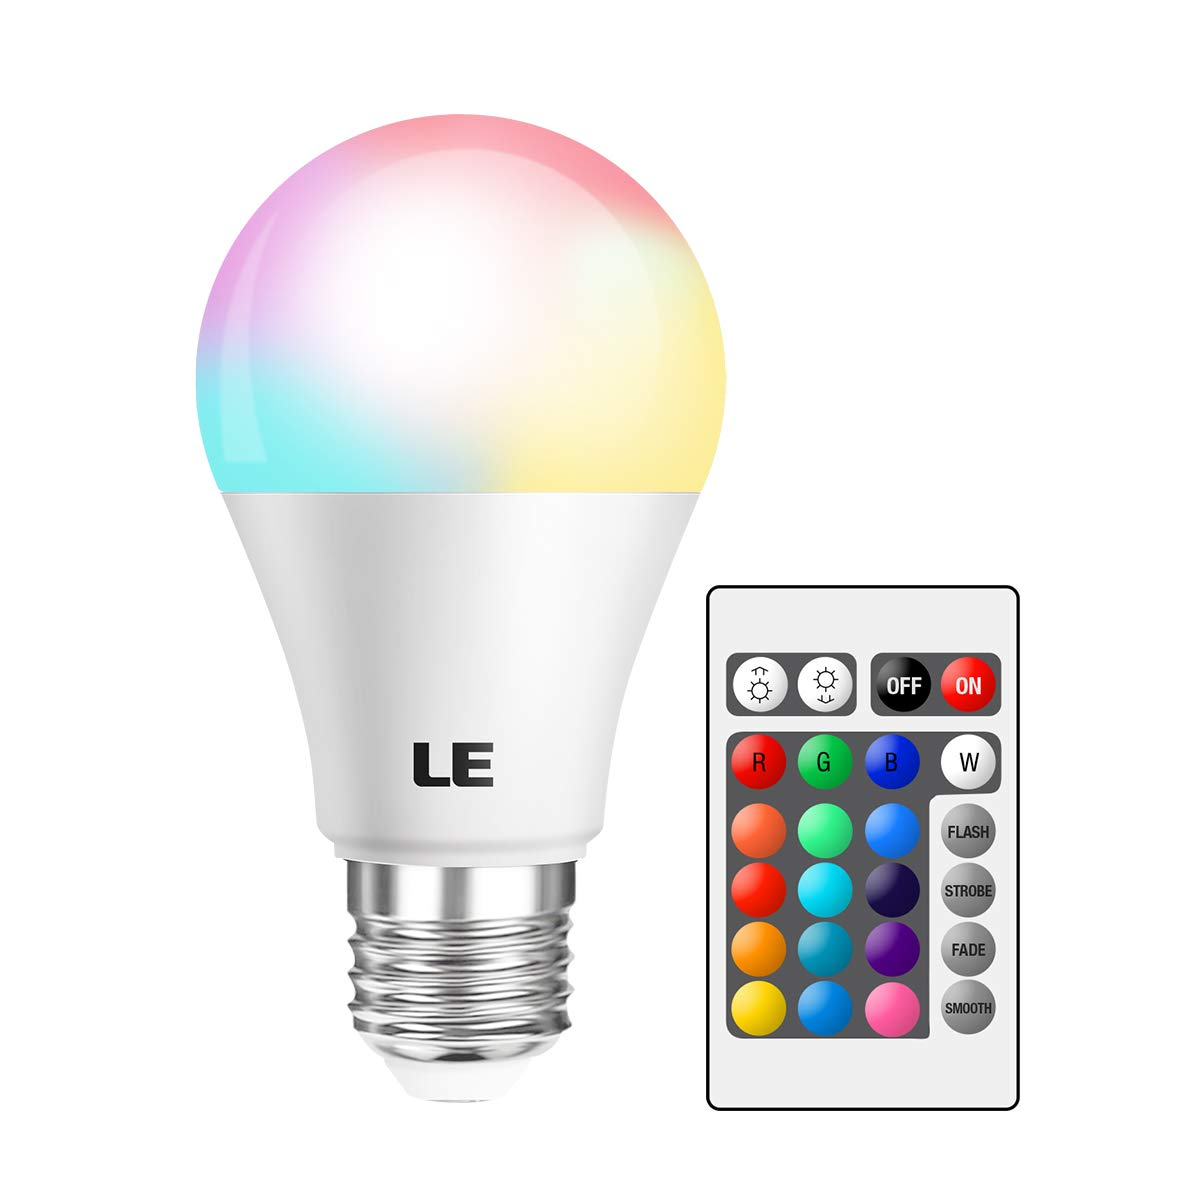 Le Rgb Color Changing Light Bulbs With Remote Dimmable 40 Watt Equivalent Warm White A19 E26 Screw Base For Home Decor Bedroom Stage Party And More Led Household Light Bulbs Amazon Com